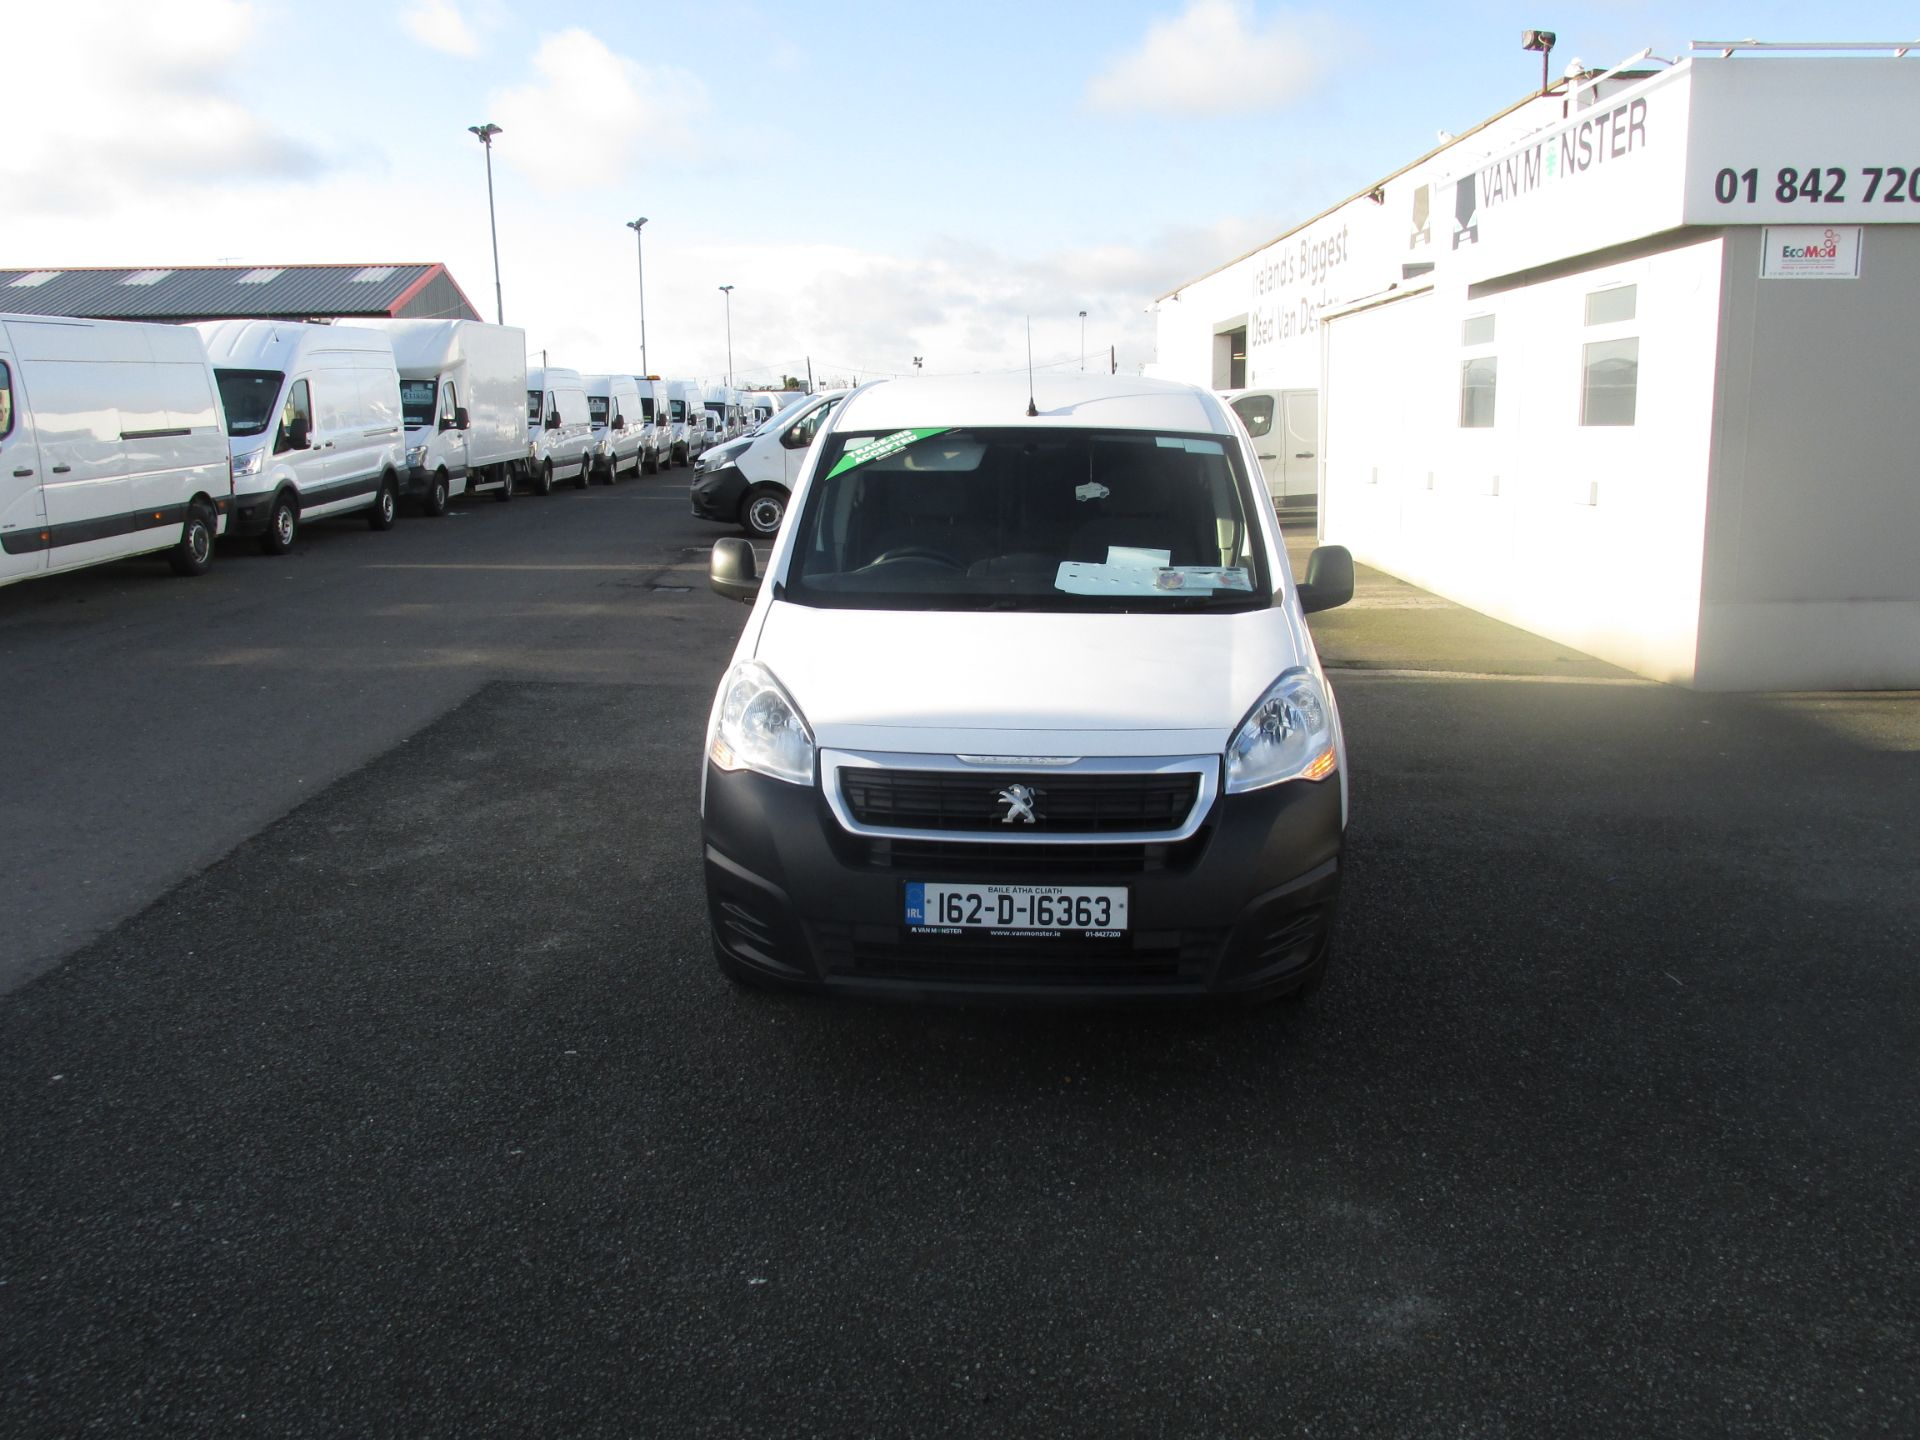 2016 Peugeot Partner #150 VANS TO VIEW IN SANTRY # (162D16363) Image 2